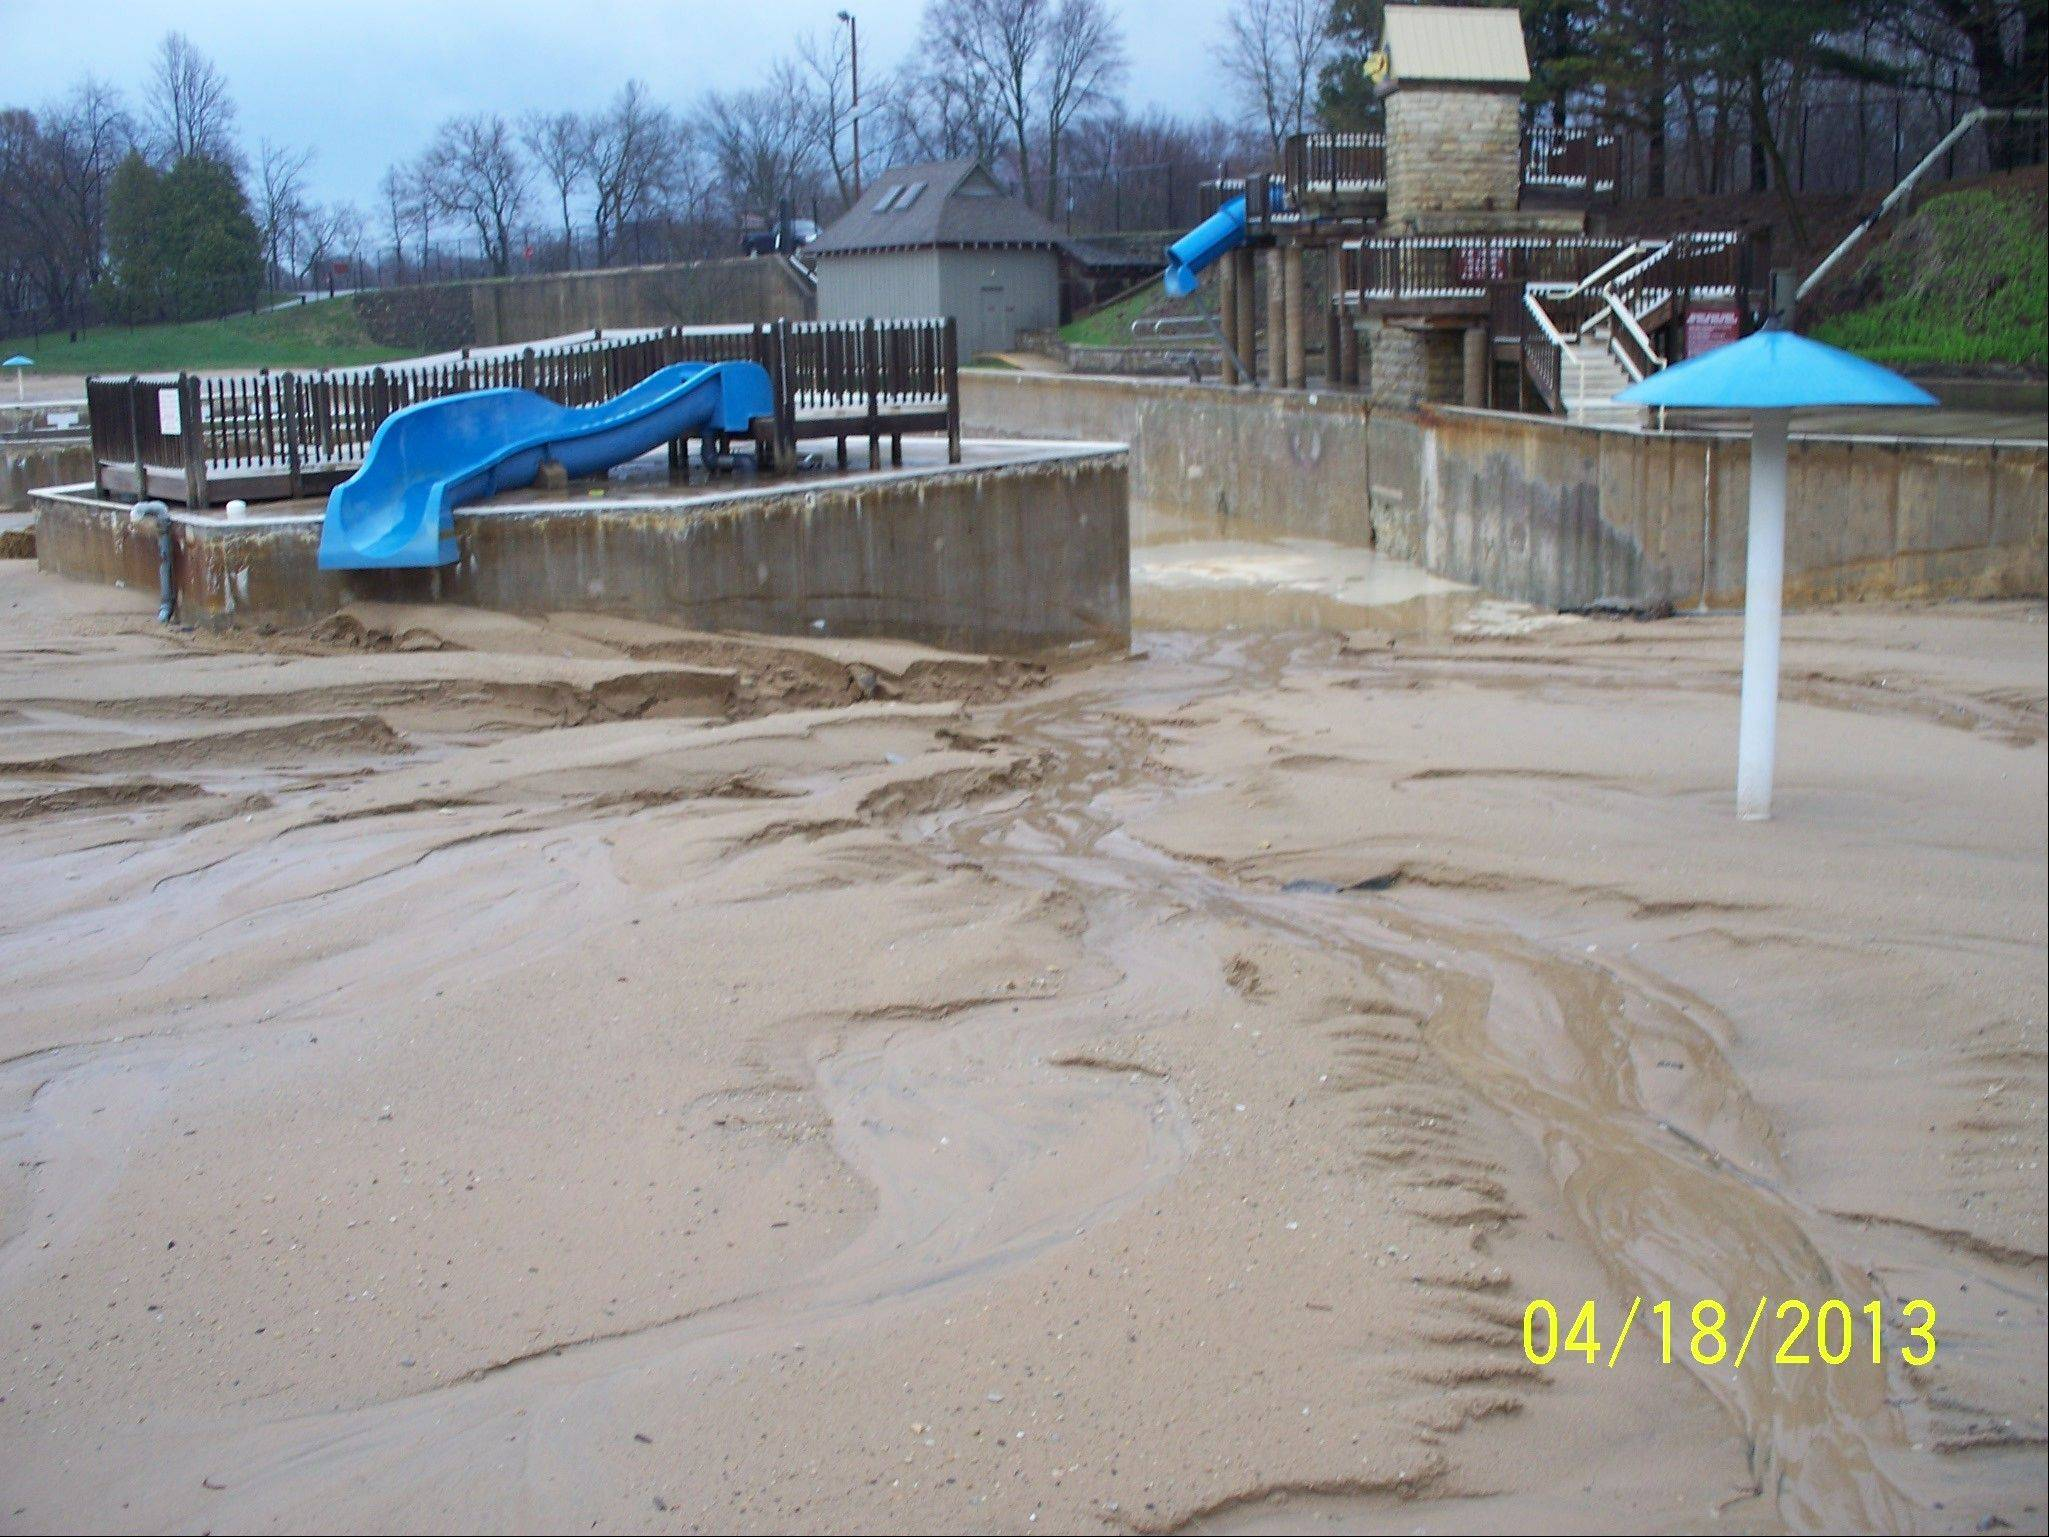 This is what the sand on the bottom of Harold Hall Quarry Beach normally looks like in the spring, before it is graded and the pool is filled for the season. But the April 24-25 storm filled Quarry Beach almost completely, delaying the district's ability to get in and move the sand.